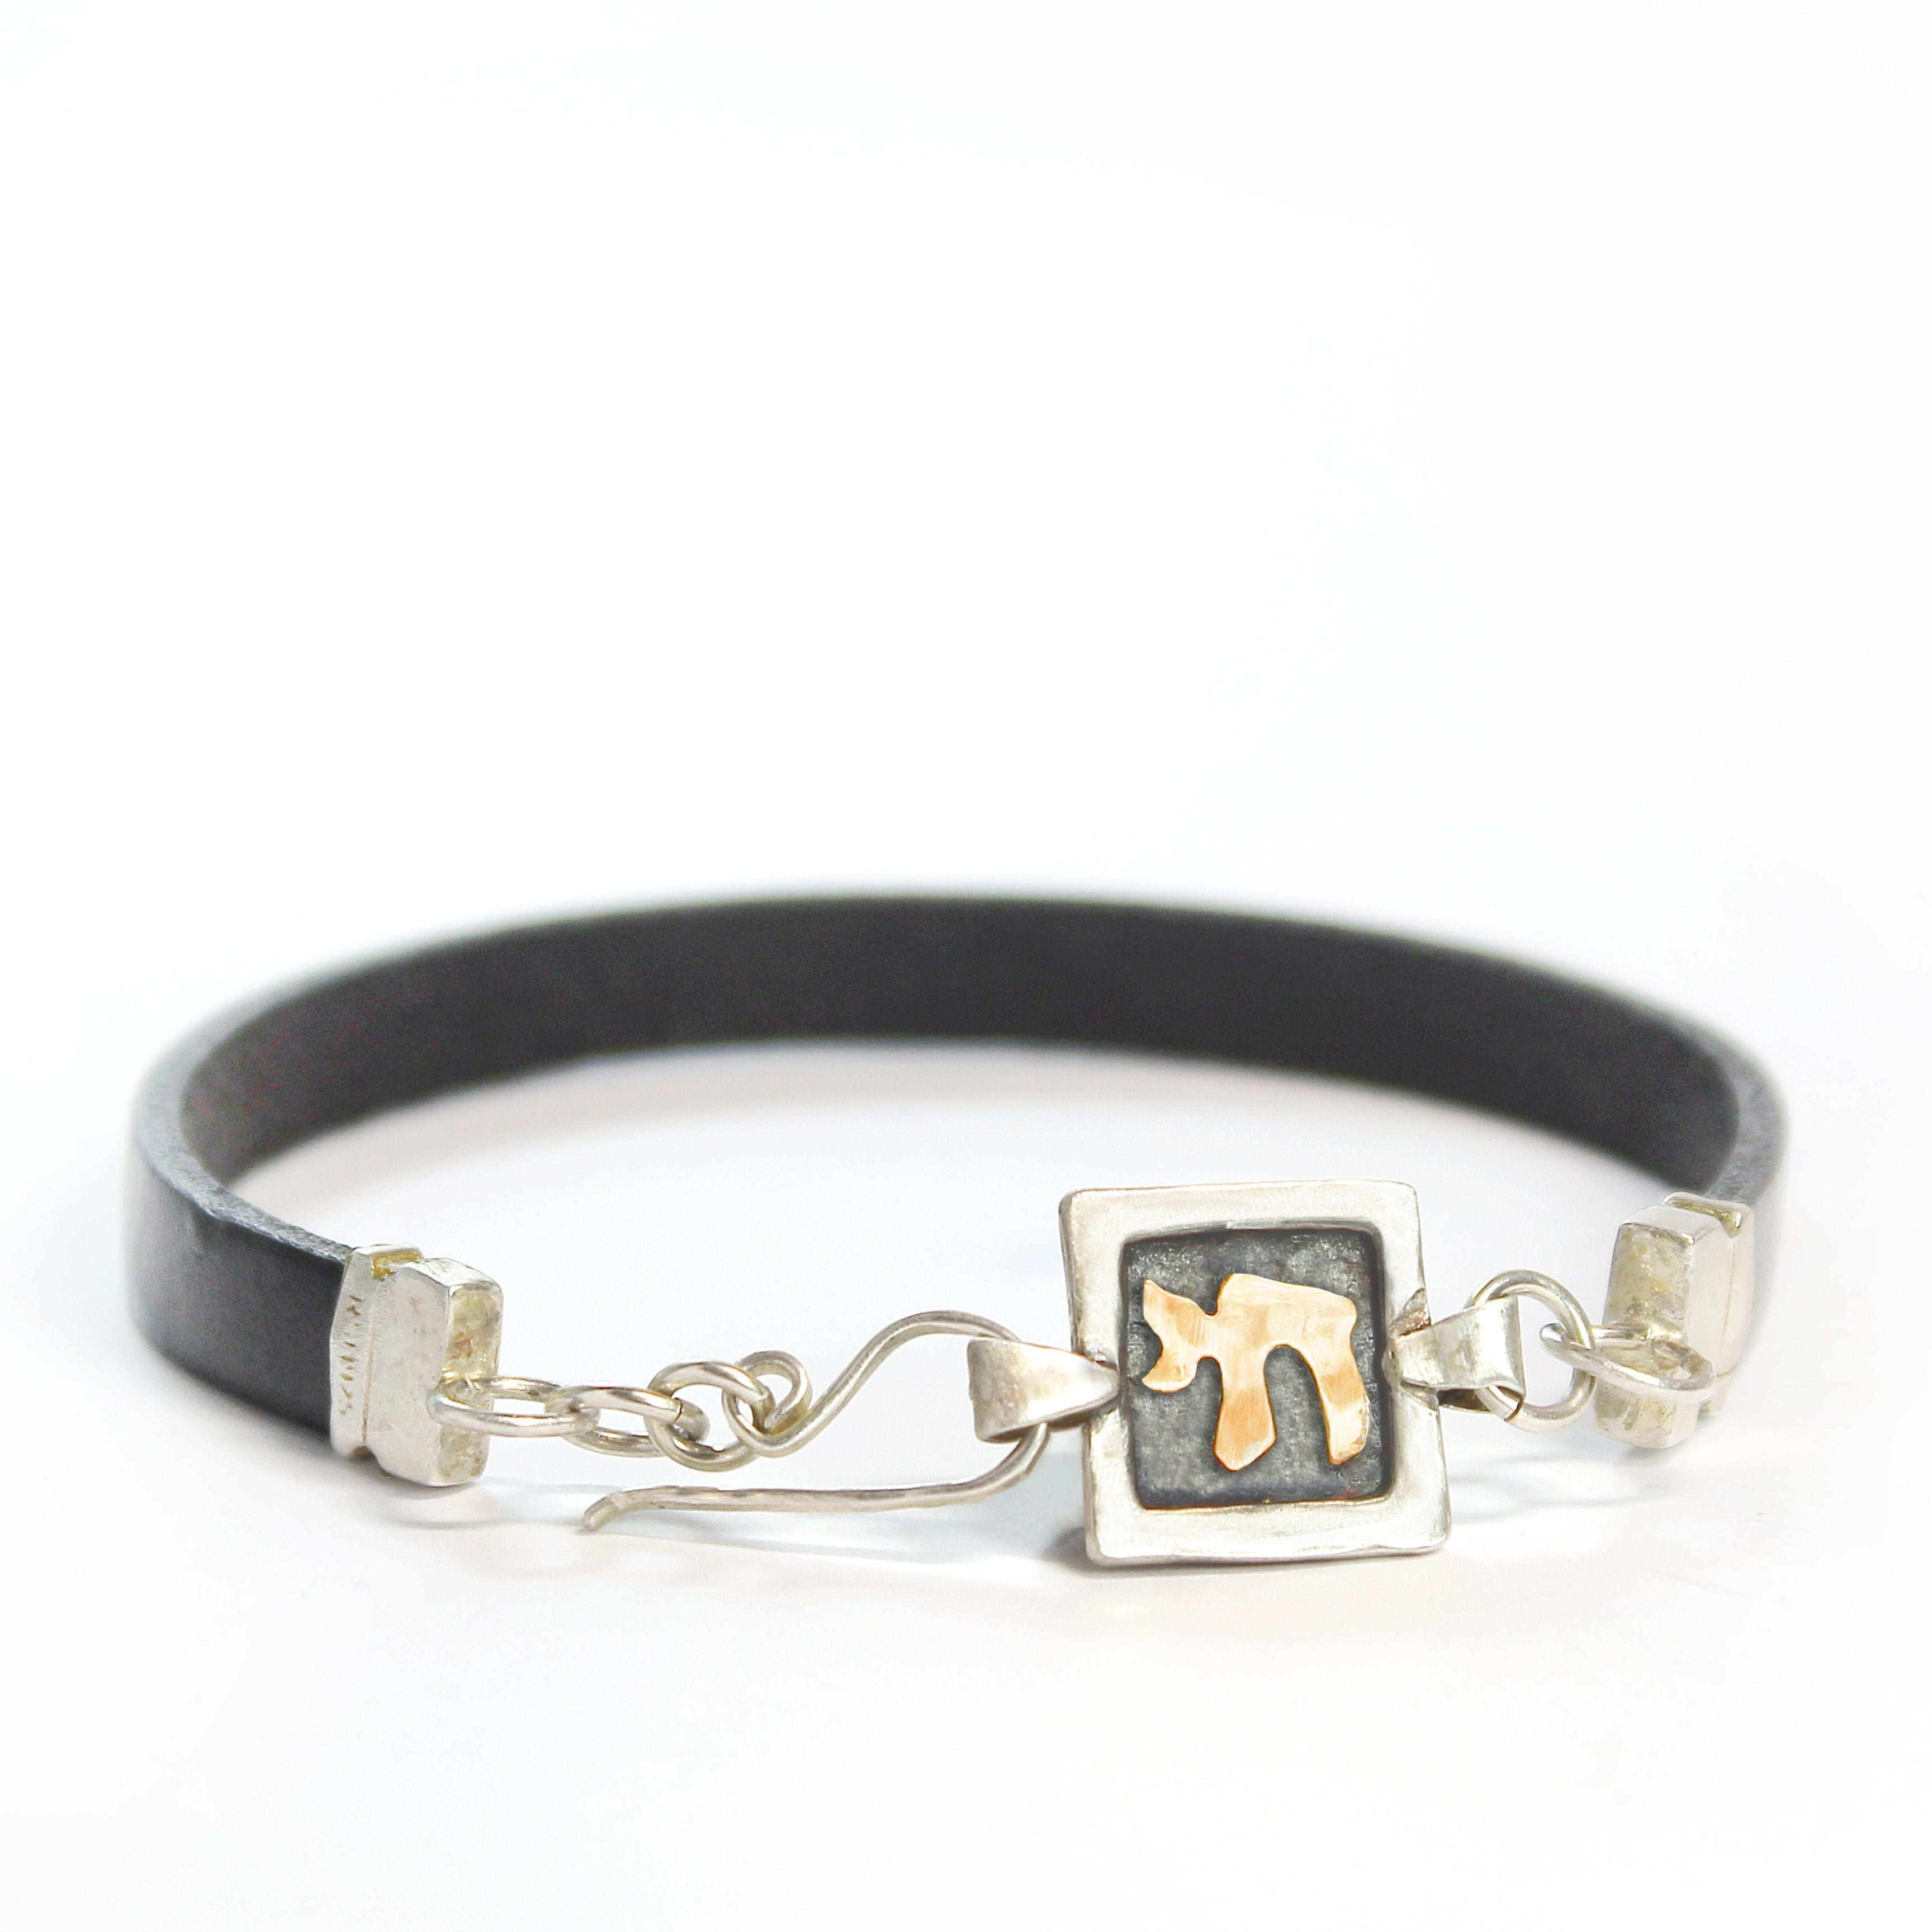 Chai- Silver & Red Gold Men's Bracelet - Shulamit Kanter